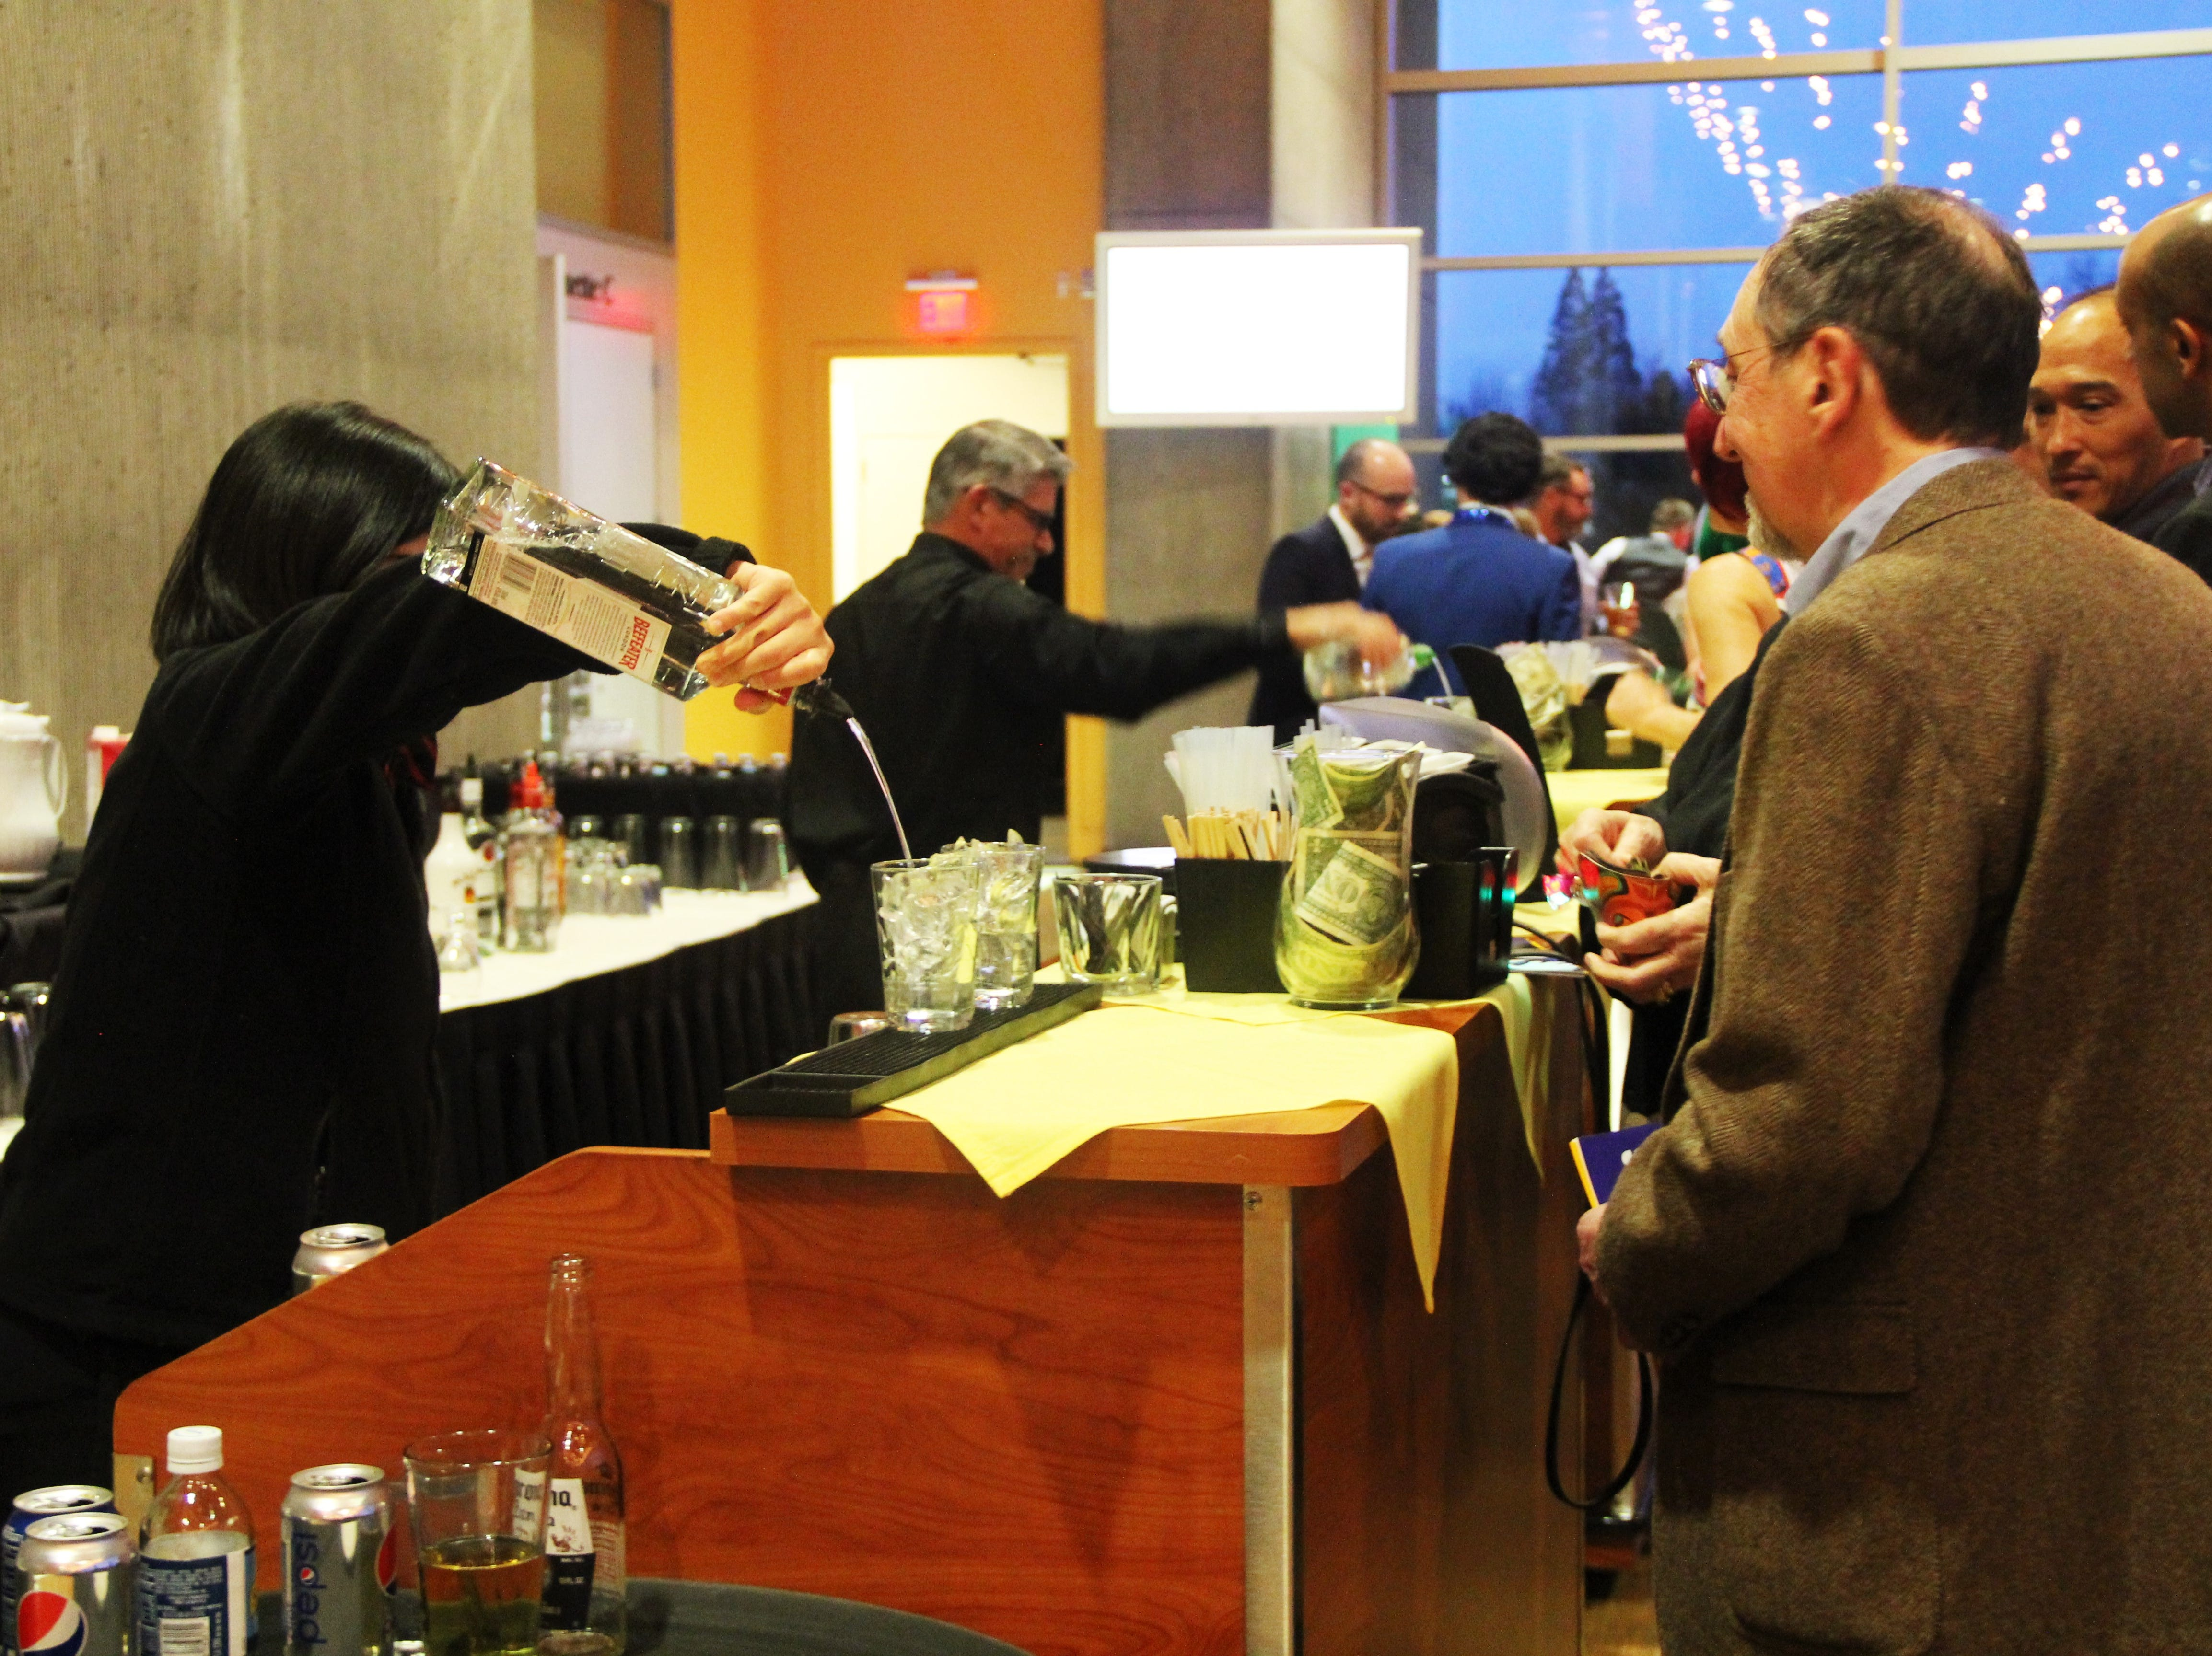 Yeo Ki, banquet supervisor at the Salem Convention Center, pours a drink for a guest at the 20th Annual Clay Ball on Saturday, Feb. 23.